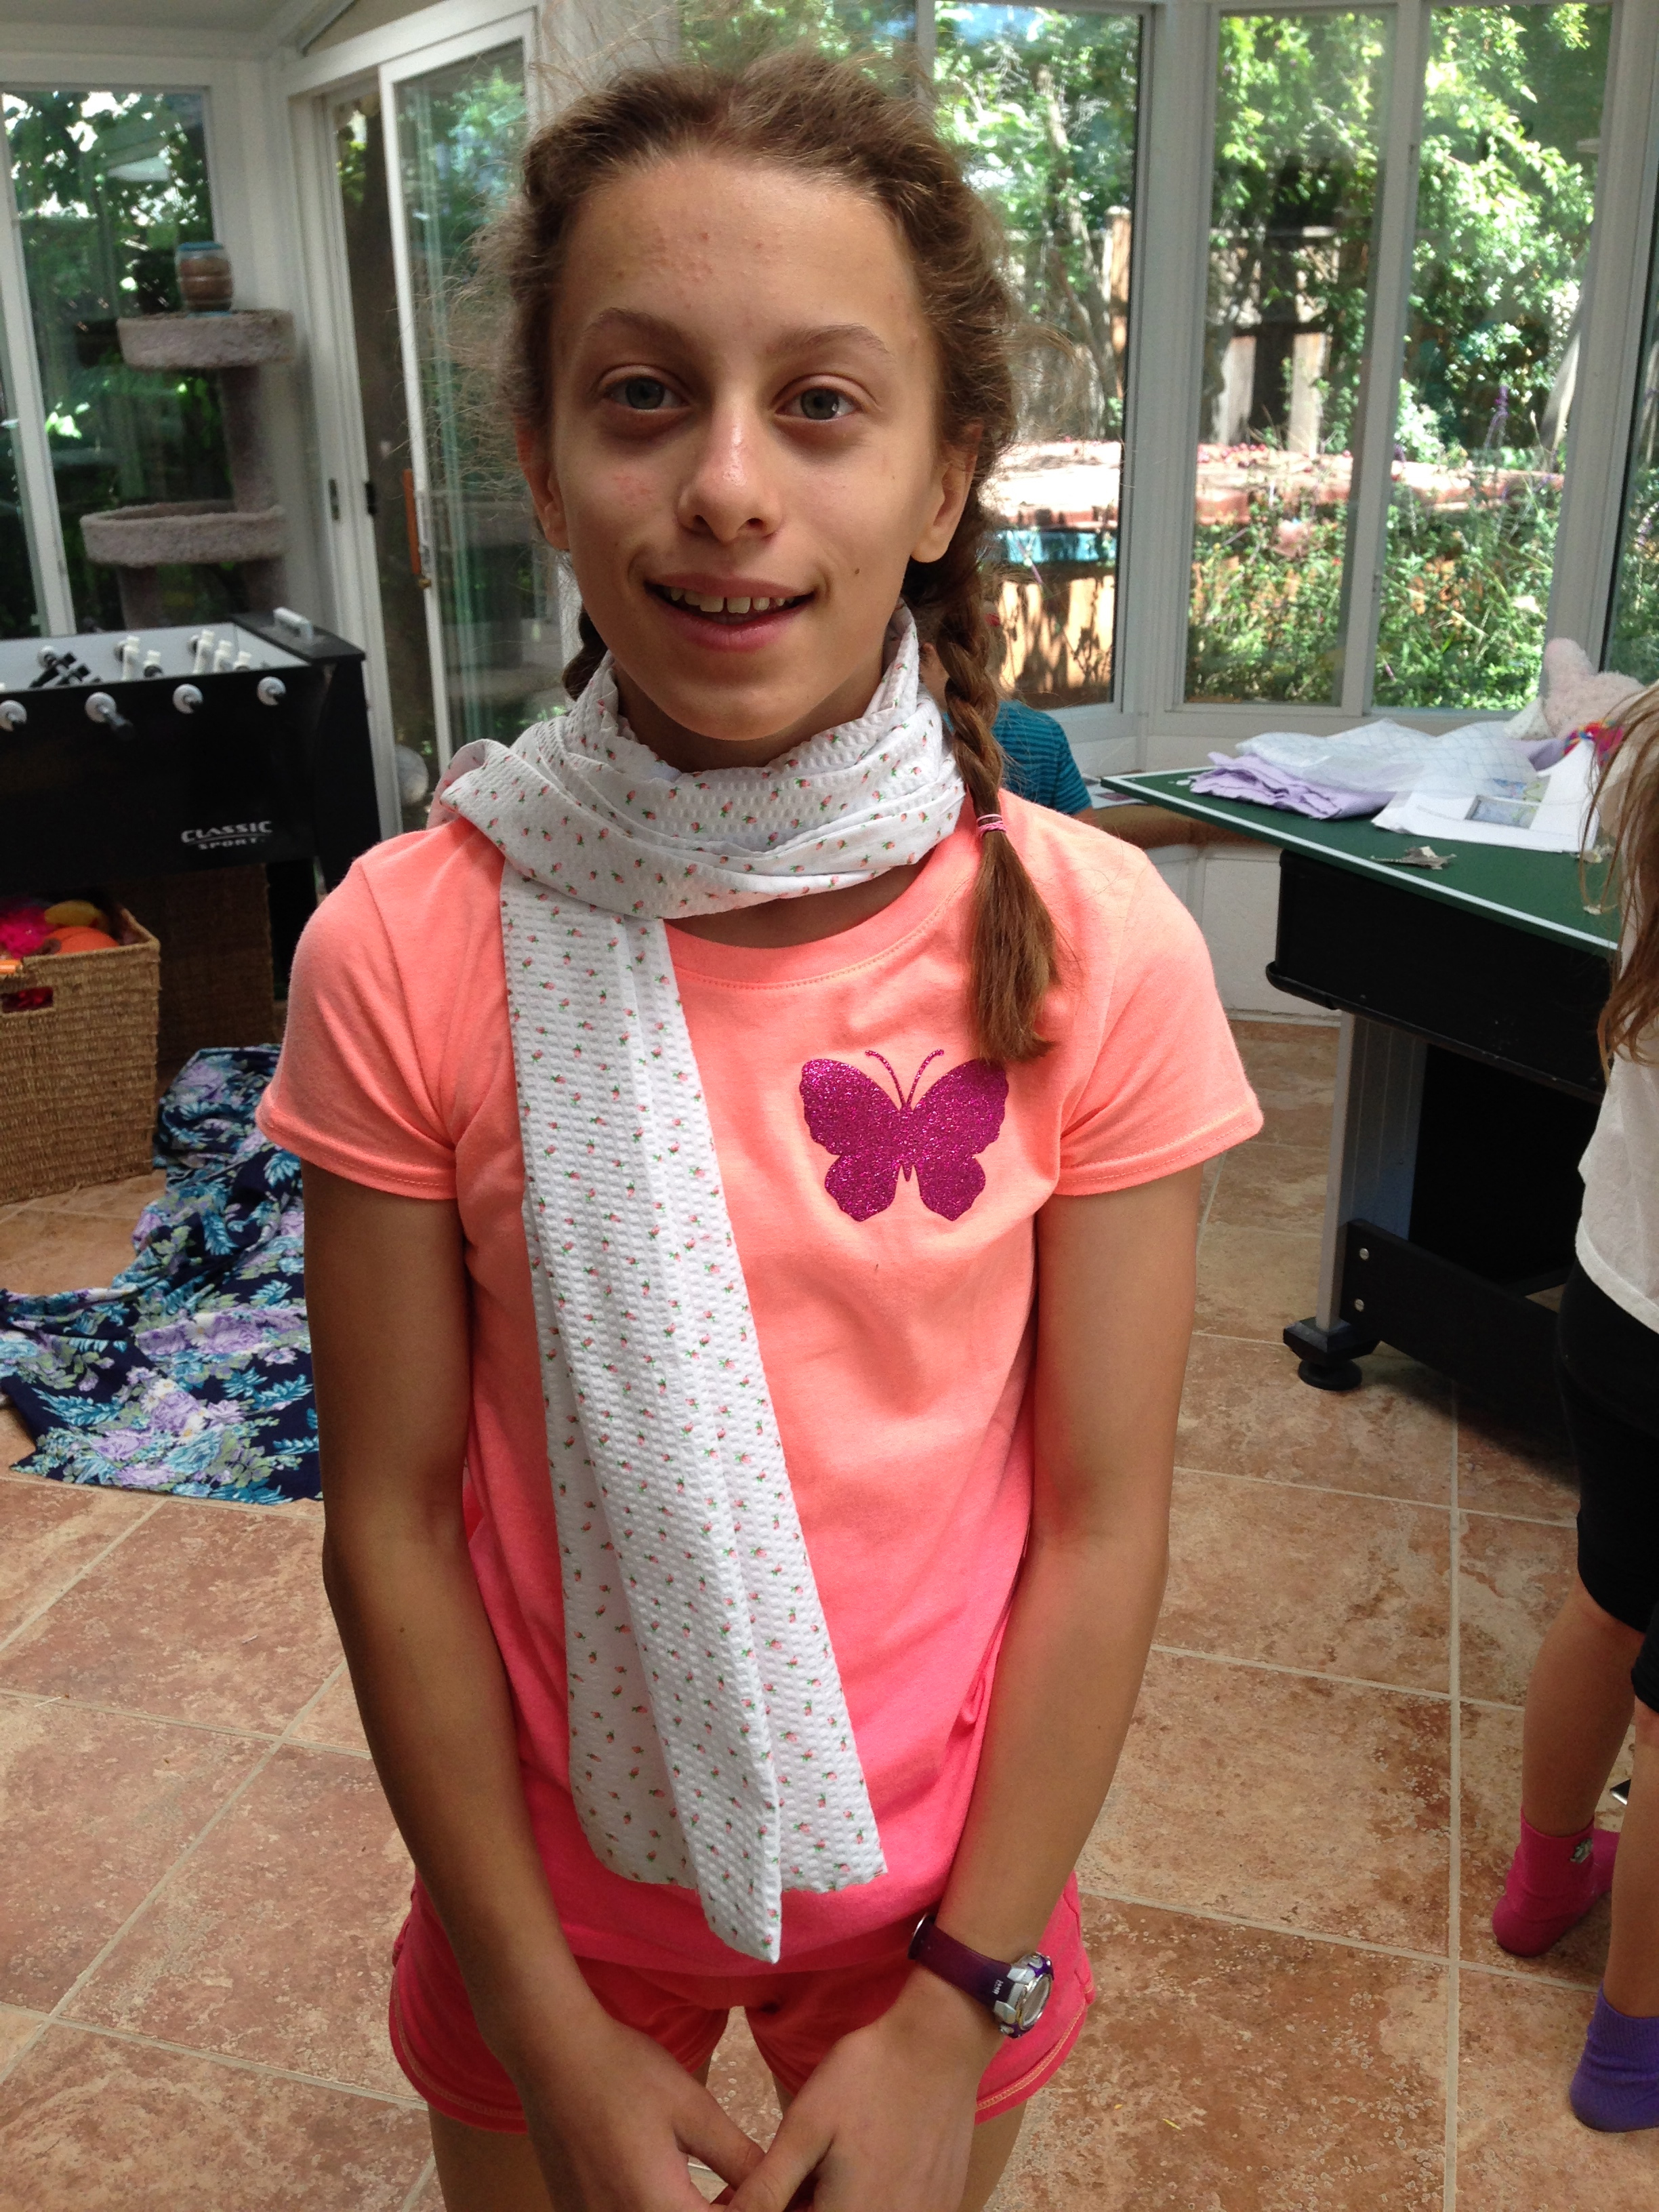 7th grader Summer Scarf